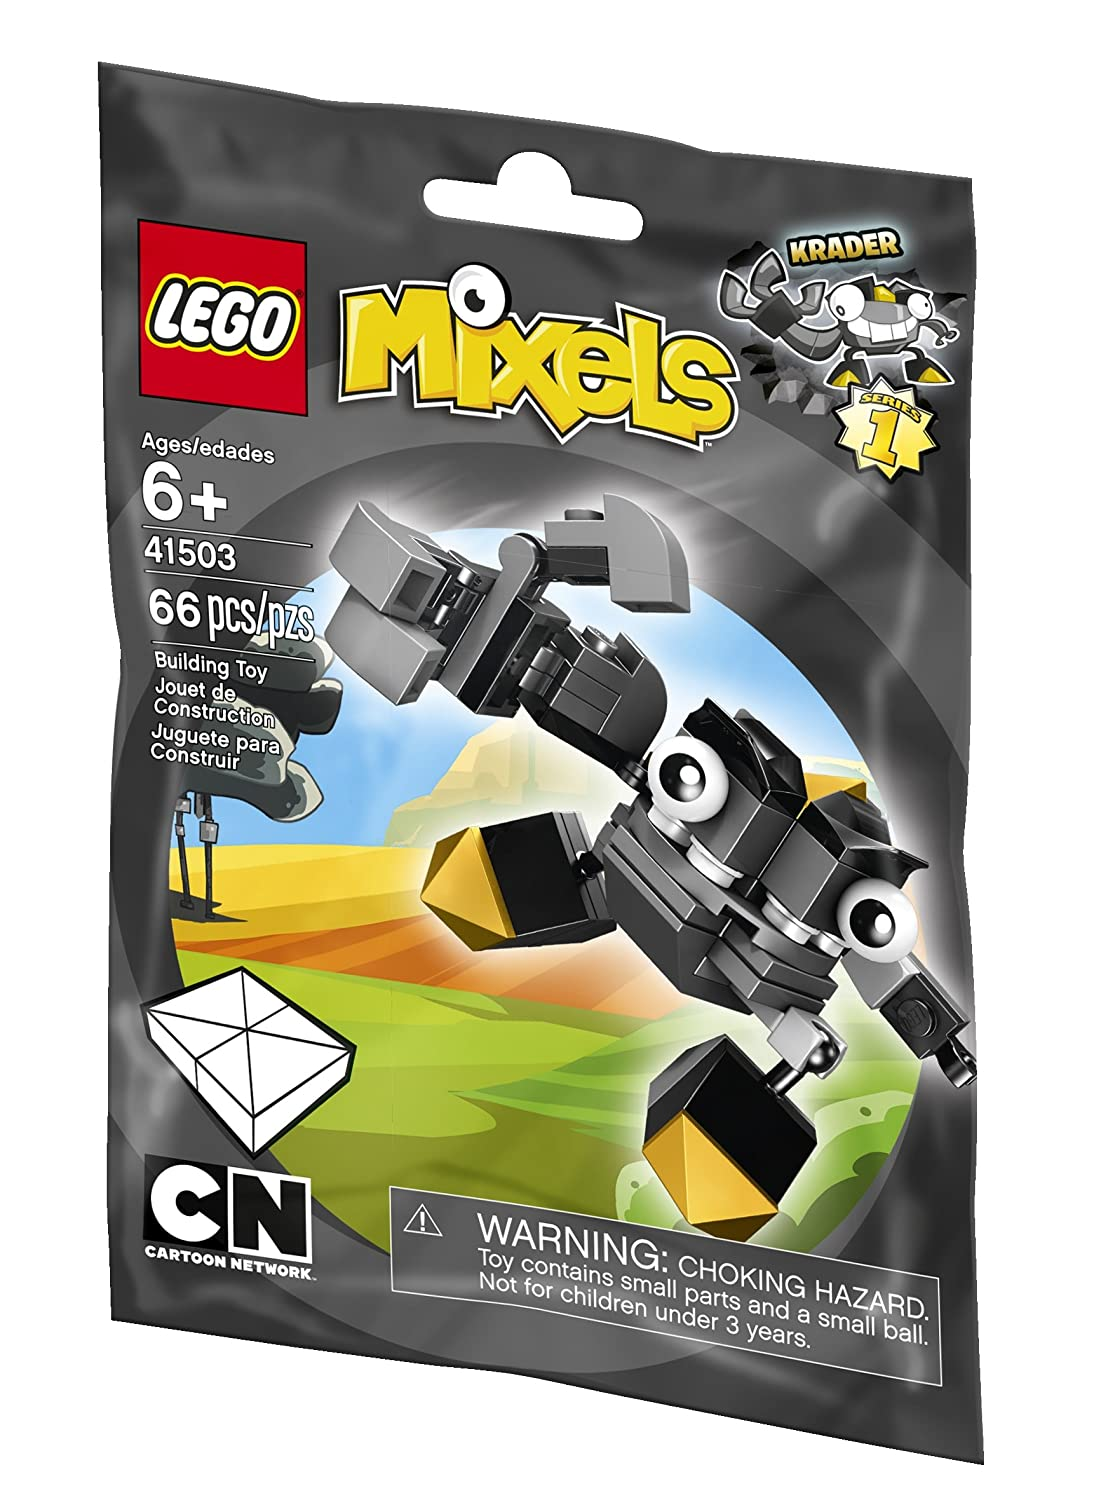 LEGO 41504 Cartoon Network SEISMO Mixels Series 1 Cragsters Tribe Polybag